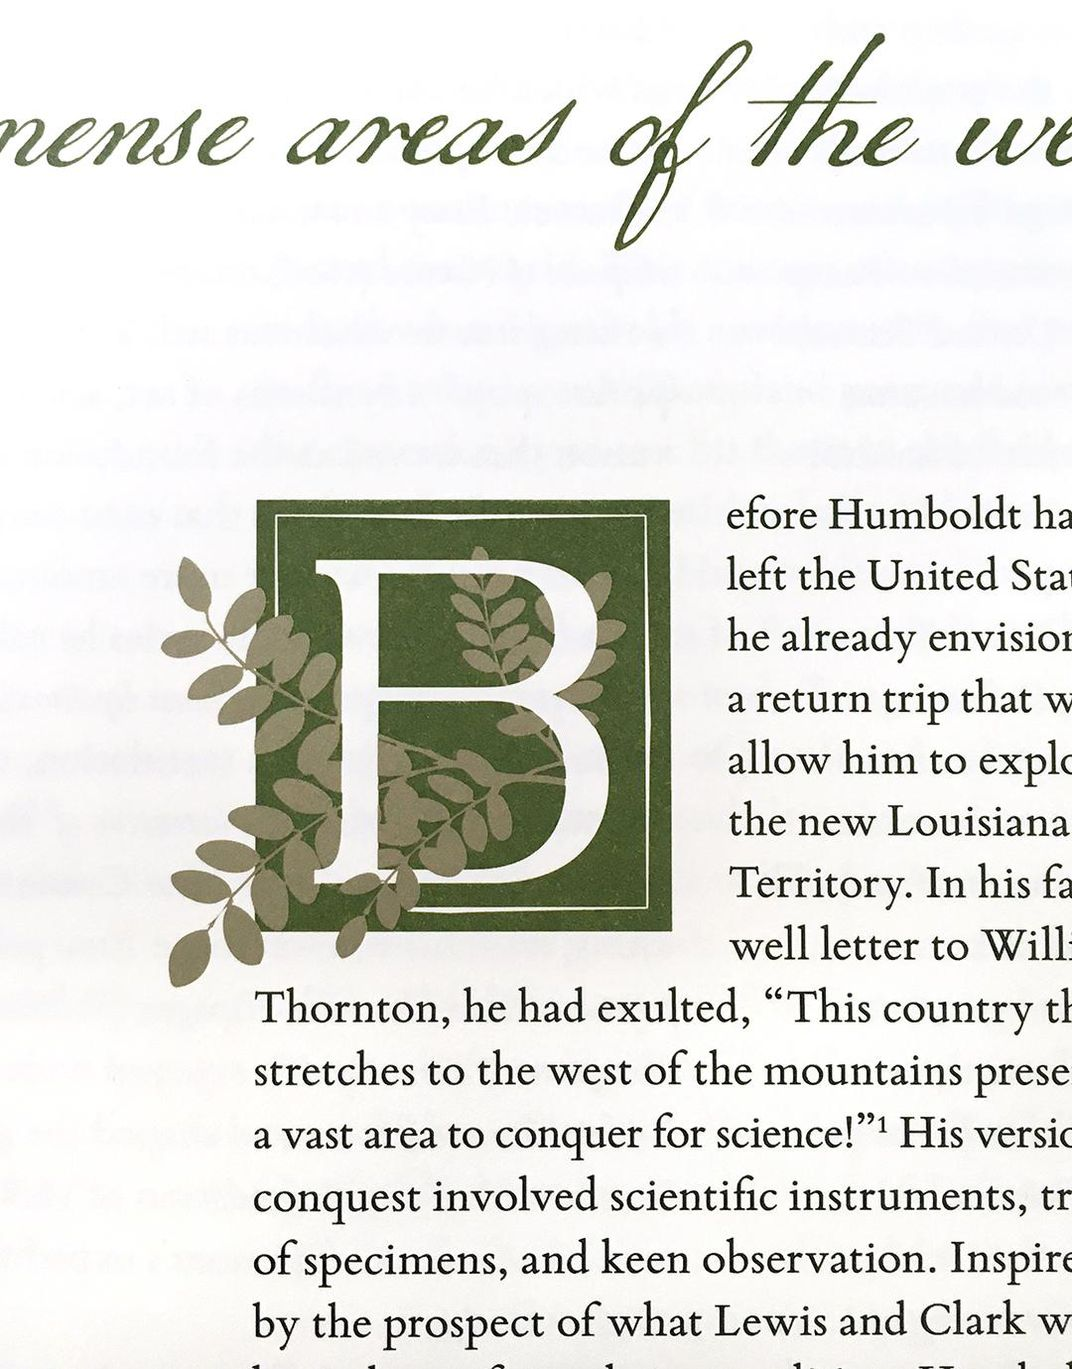 A close up photo of the design of the first letter in the chapter.